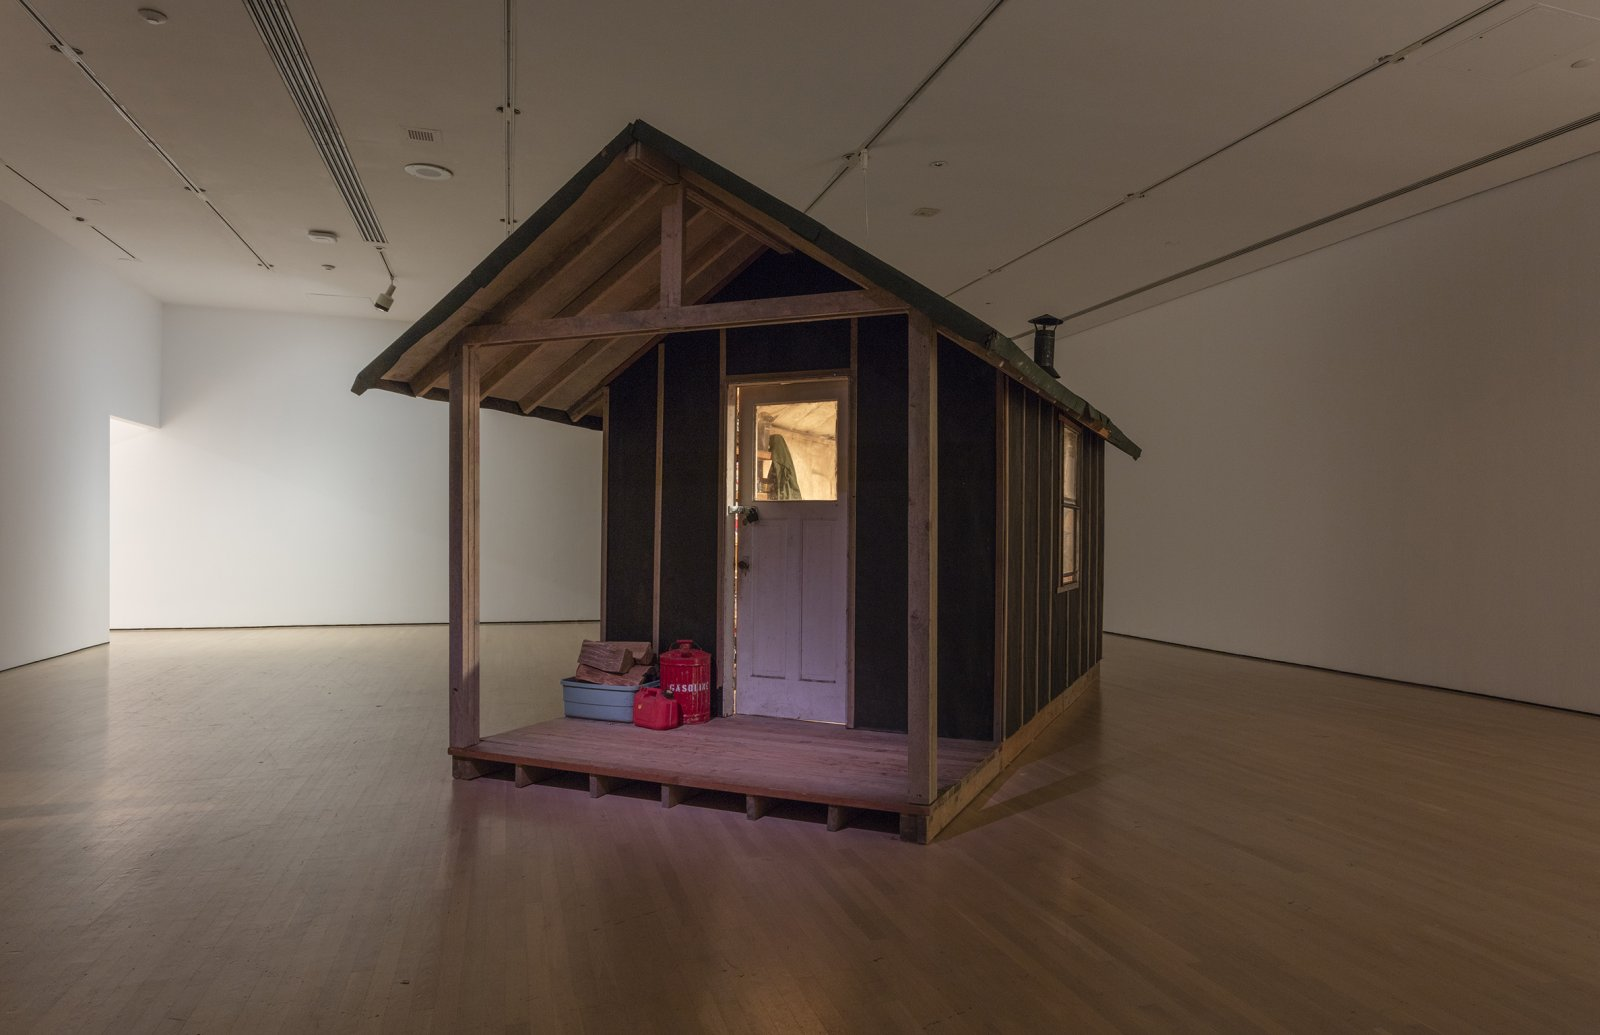 Liz Magor, Messenger, 1996–2002, wood, plaster, textile, found objects, dimensions variable by Liz Magor